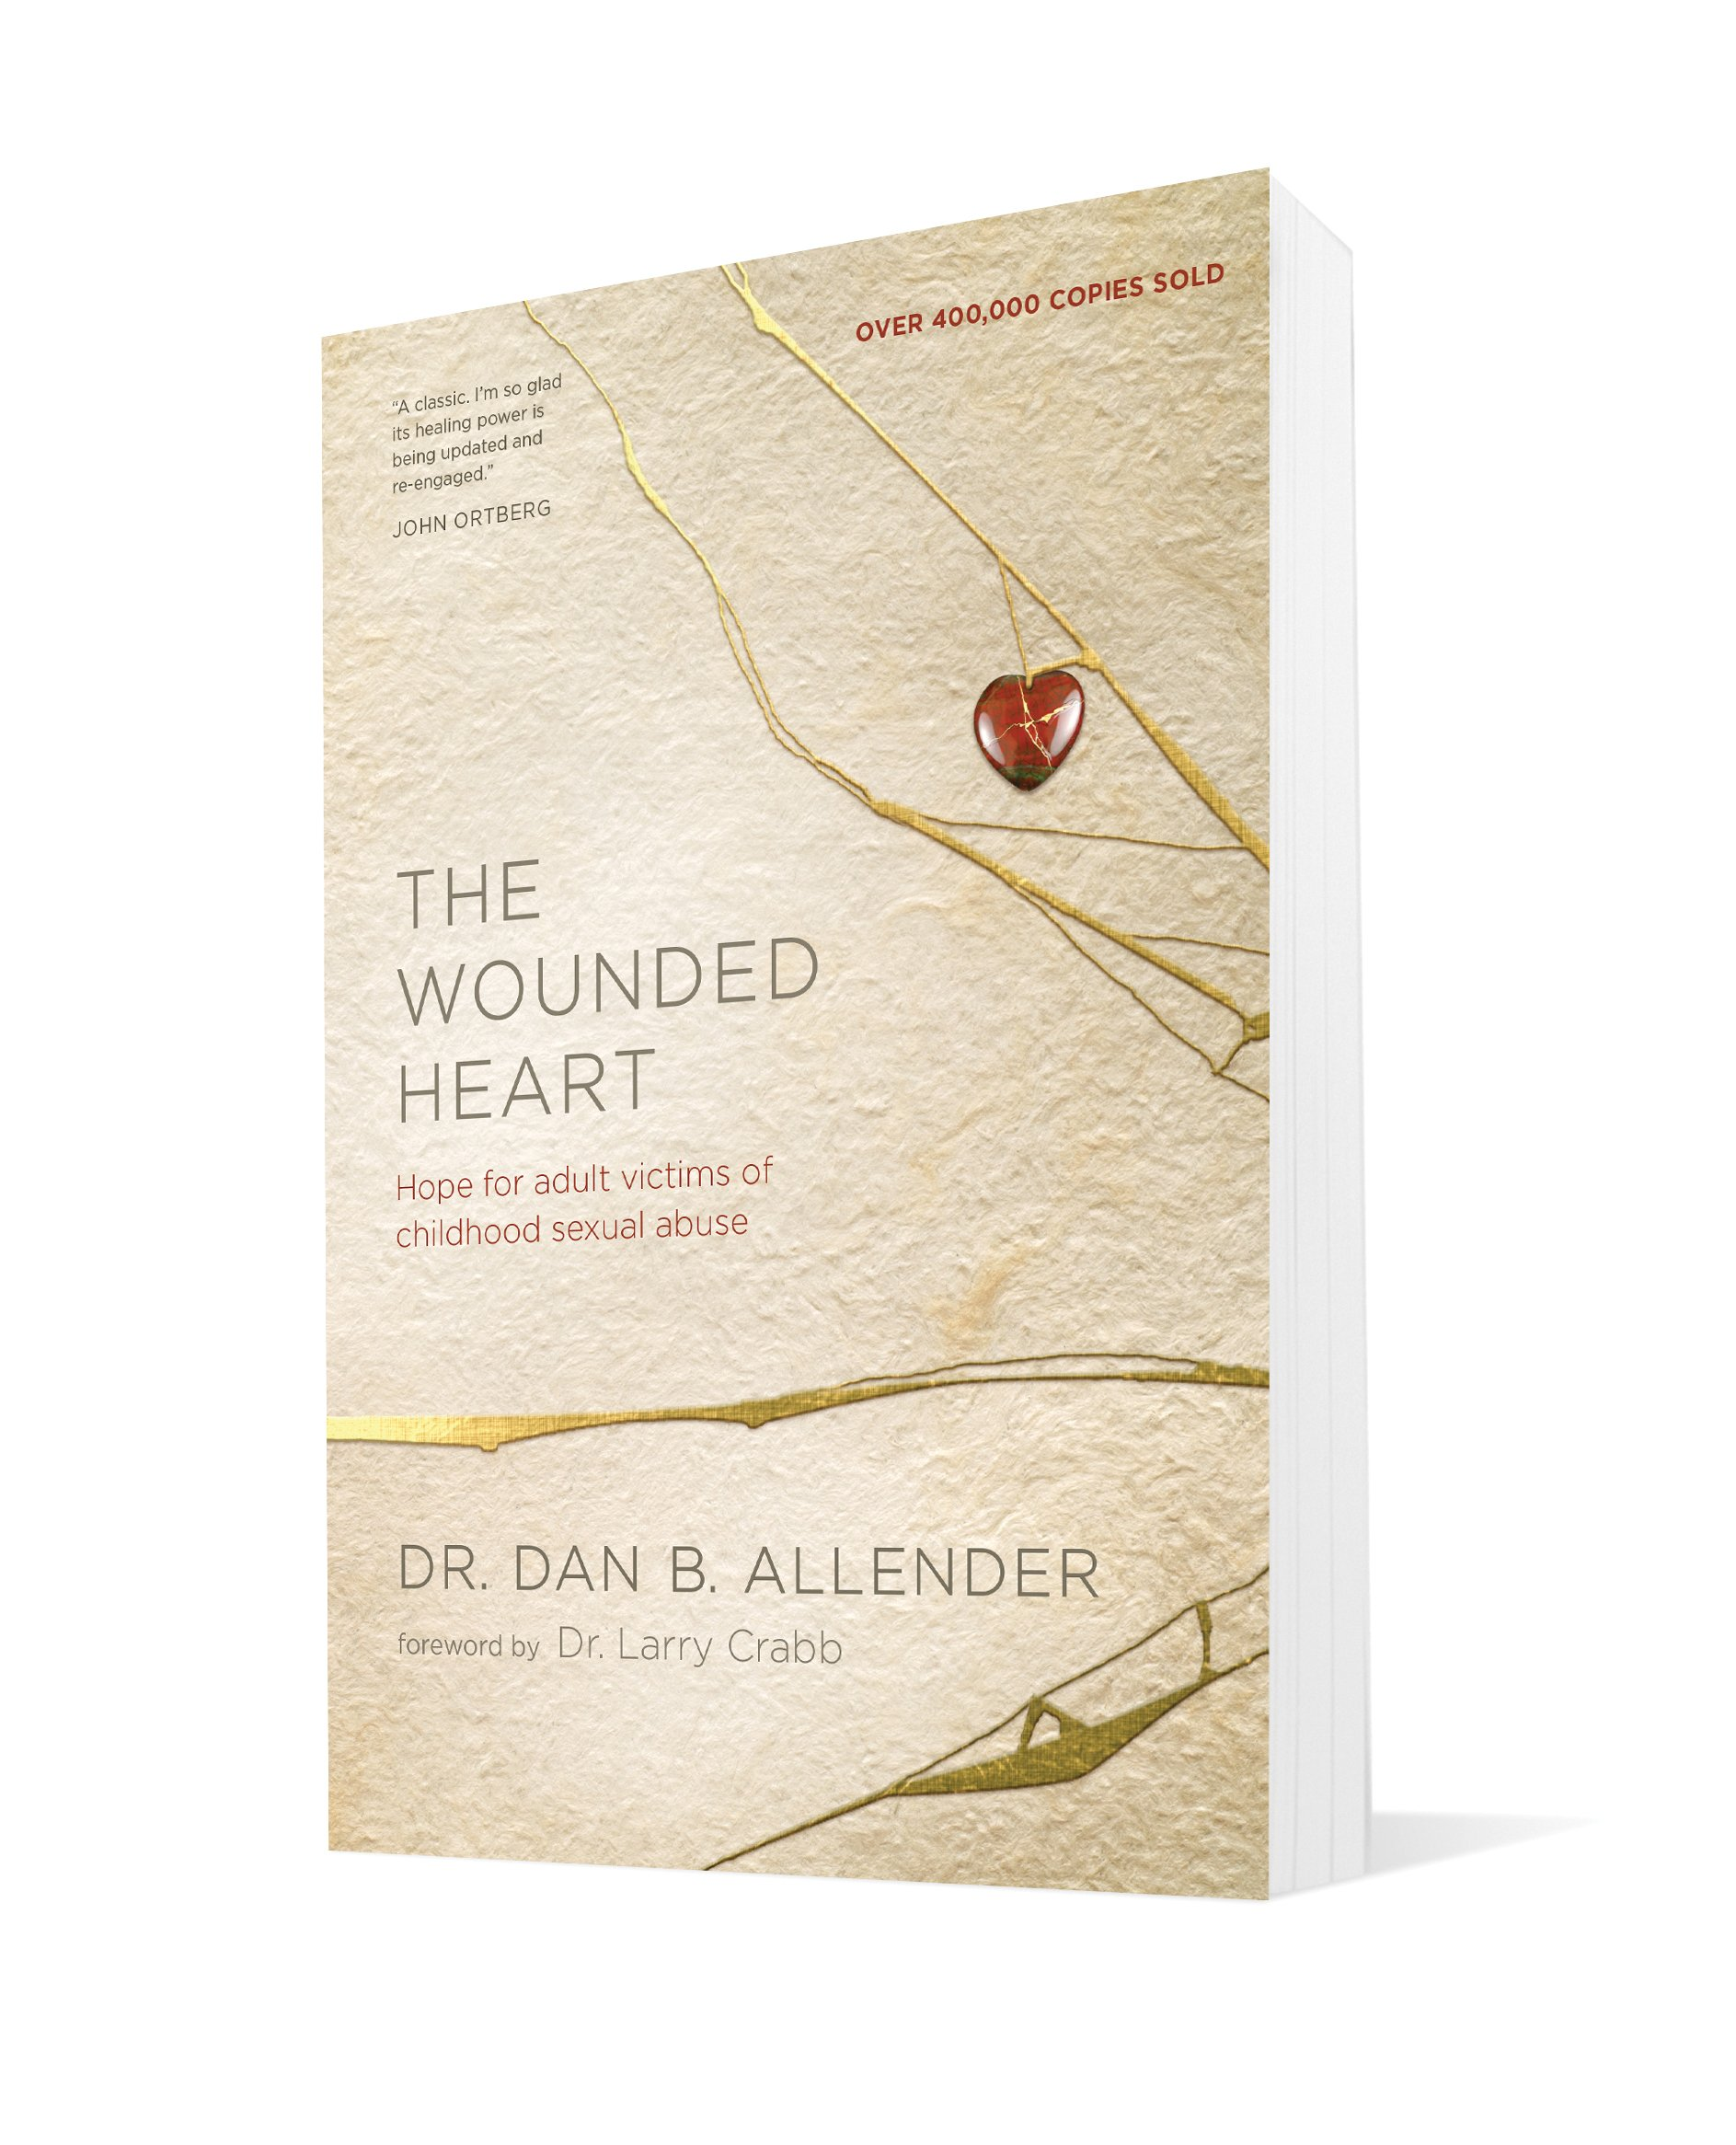 The wounded heart hope for adult victims of childhood sexual abuse the wounded heart hope for adult victims of childhood sexual abuse dan allender karen lee thorp 9781600063077 amazon books fandeluxe Gallery